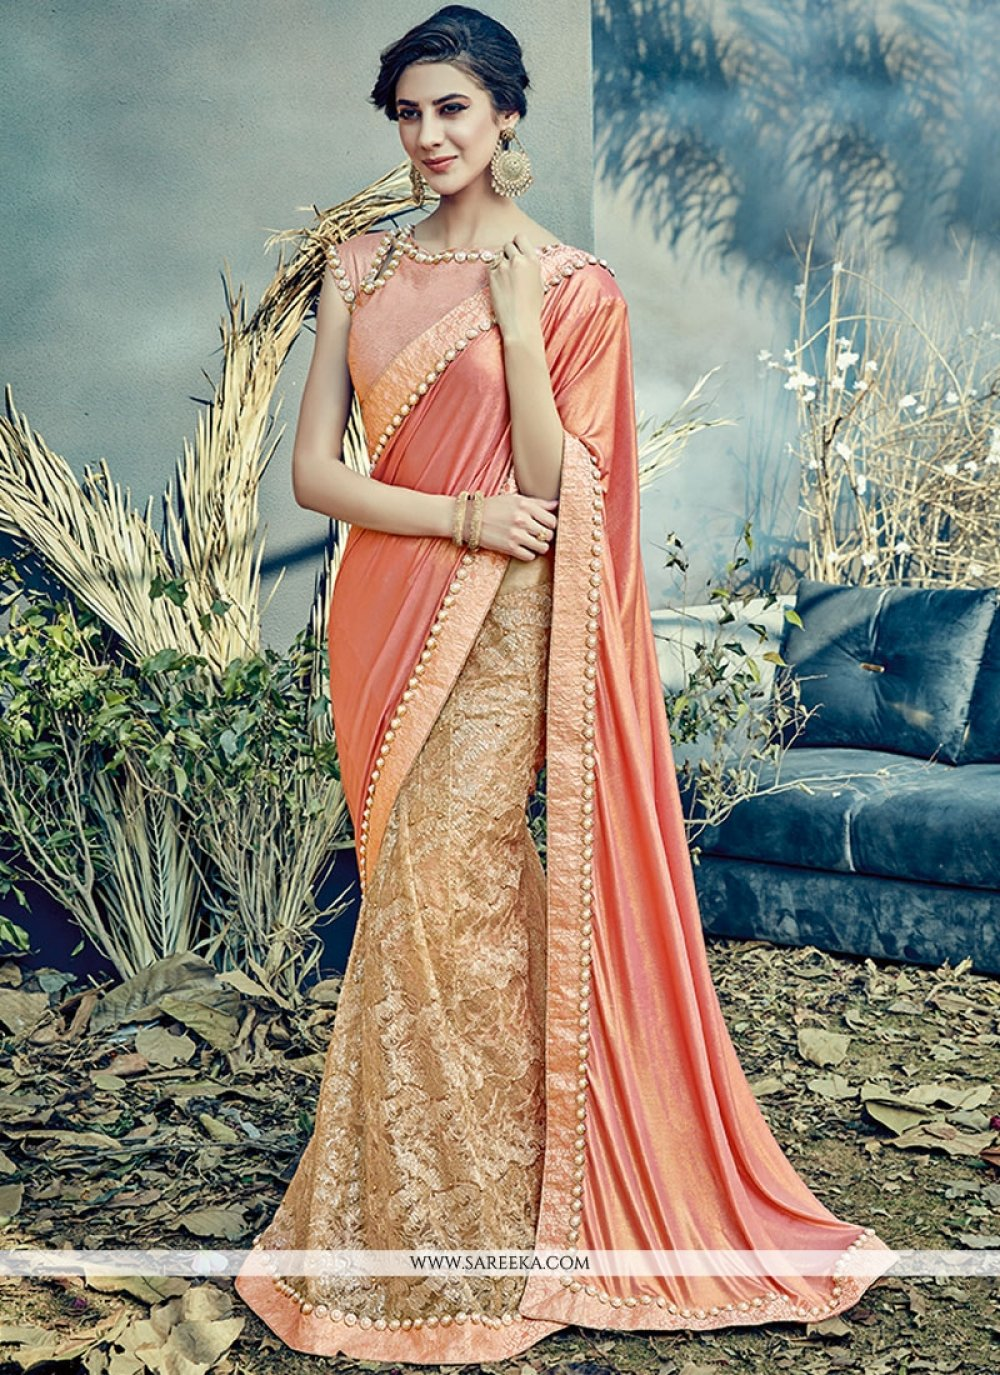 Resham Work Peach Lycra Lehenga Saree